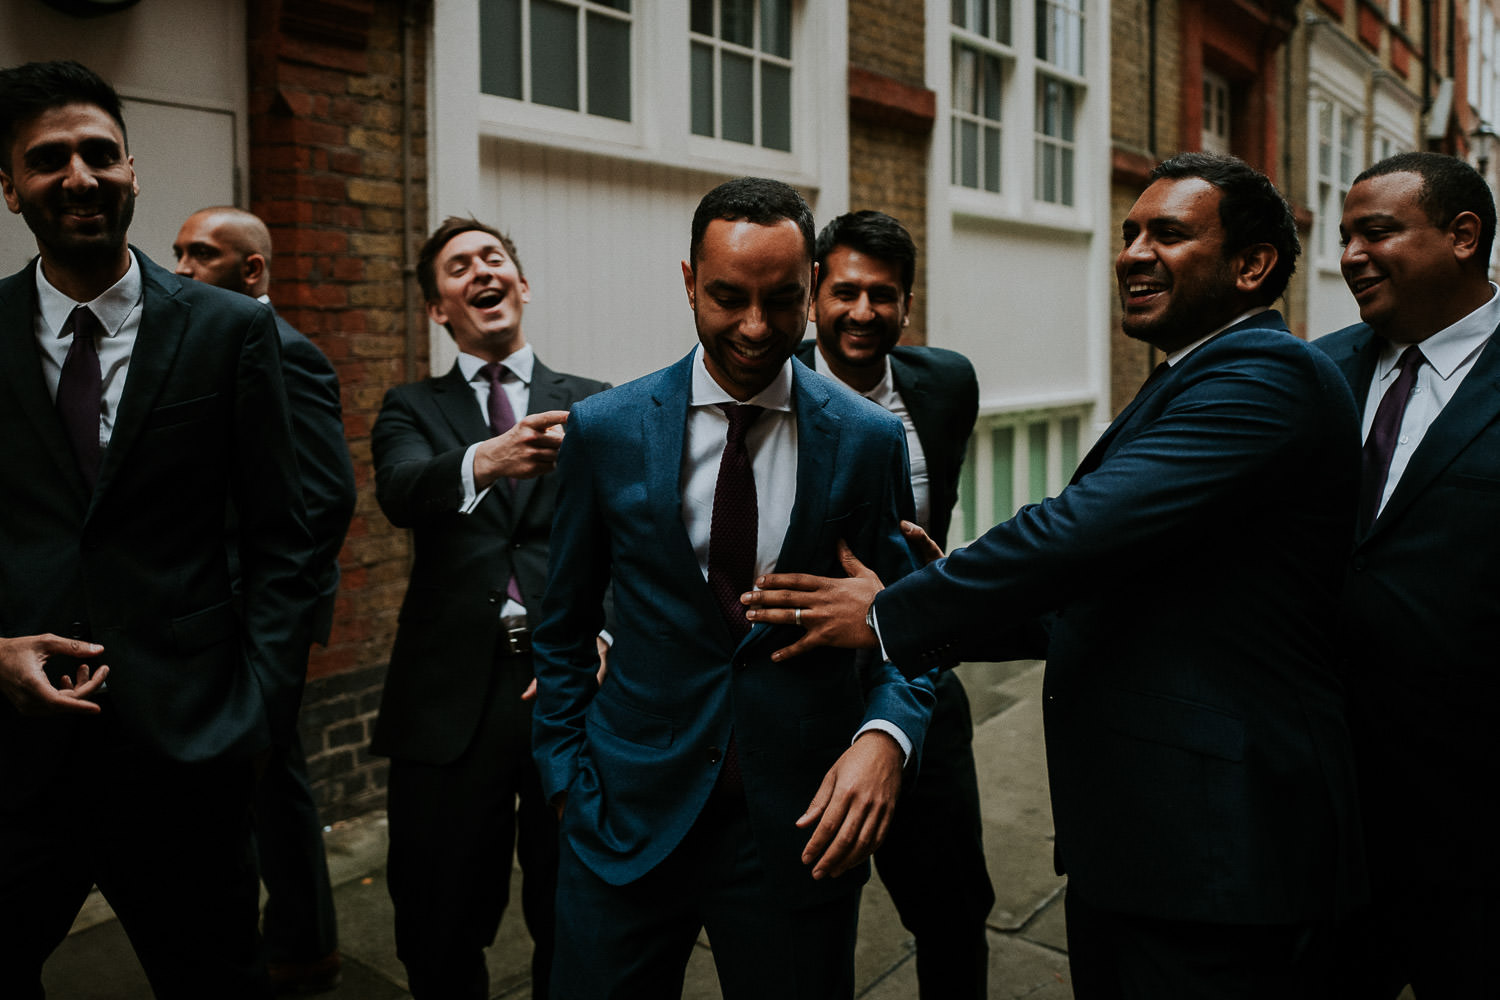 some guys laughing during one of my recent uk wedding videography assignments.